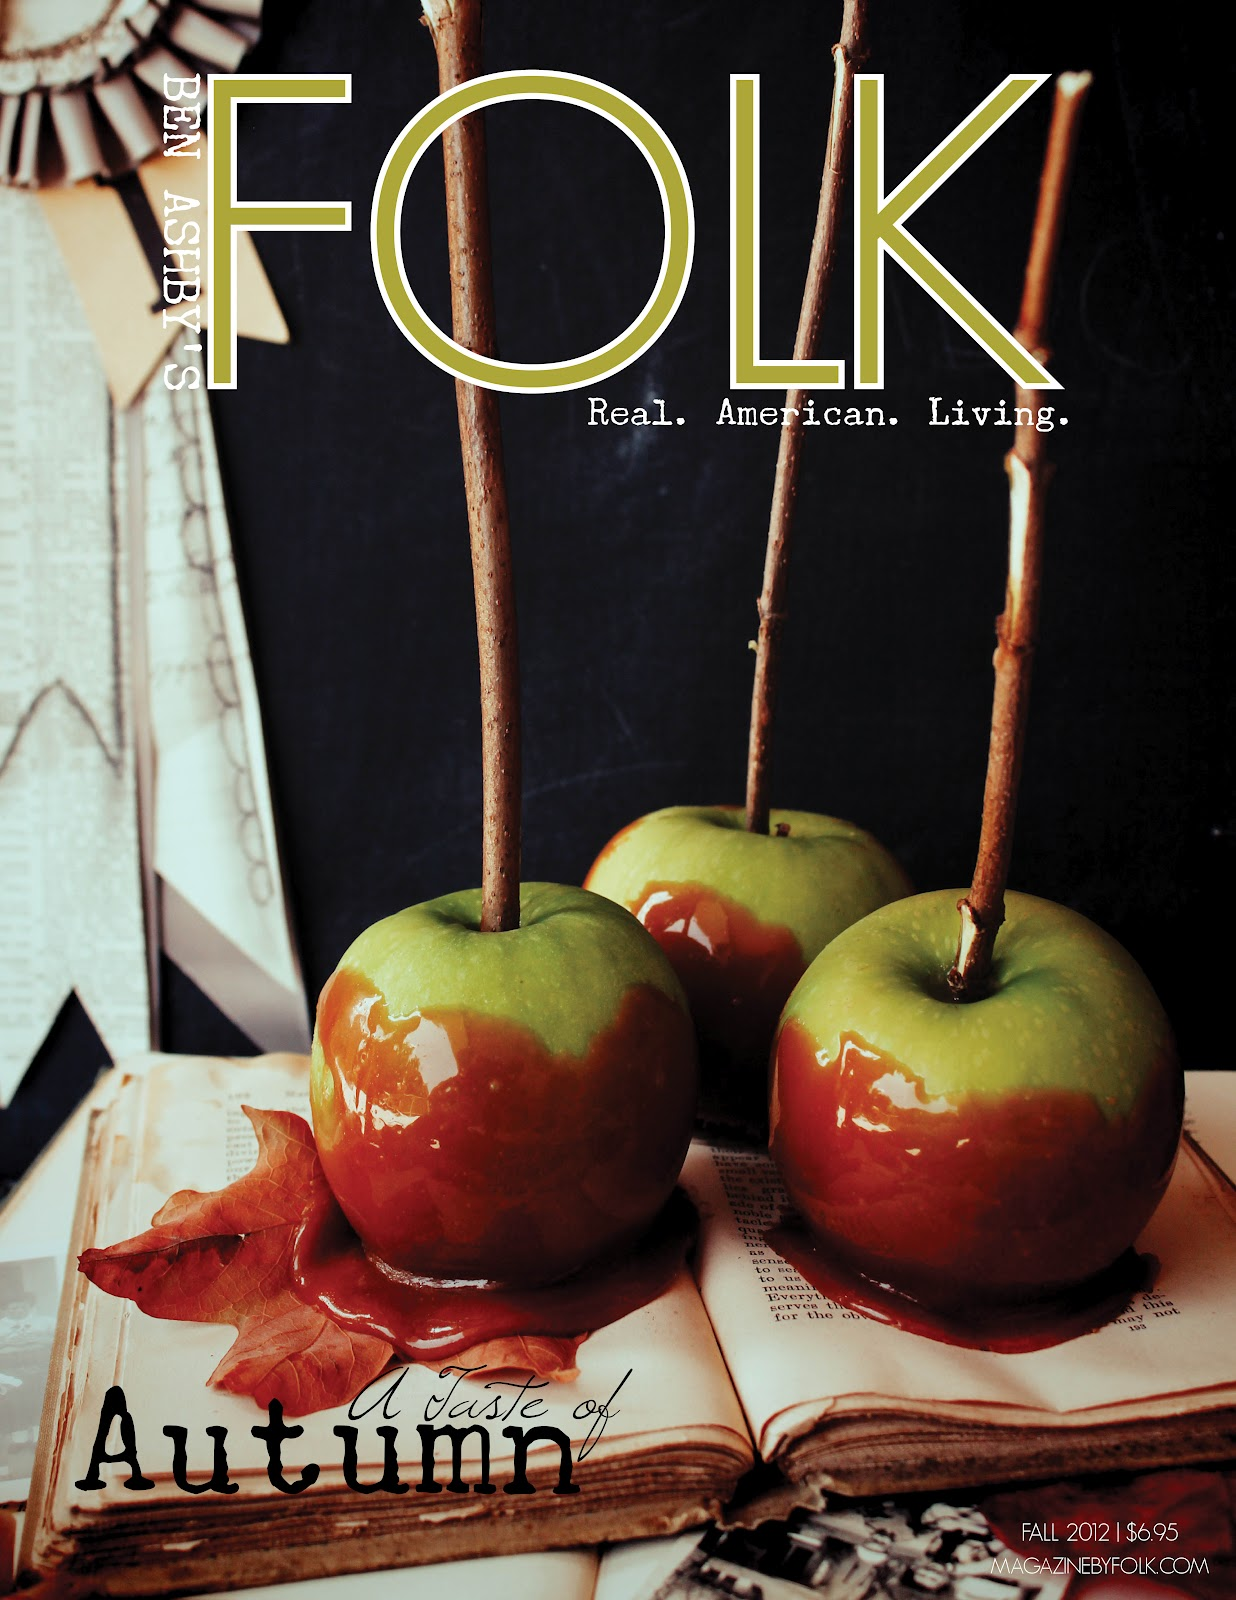 We are joining the FOLK Magazine team and other fun news!